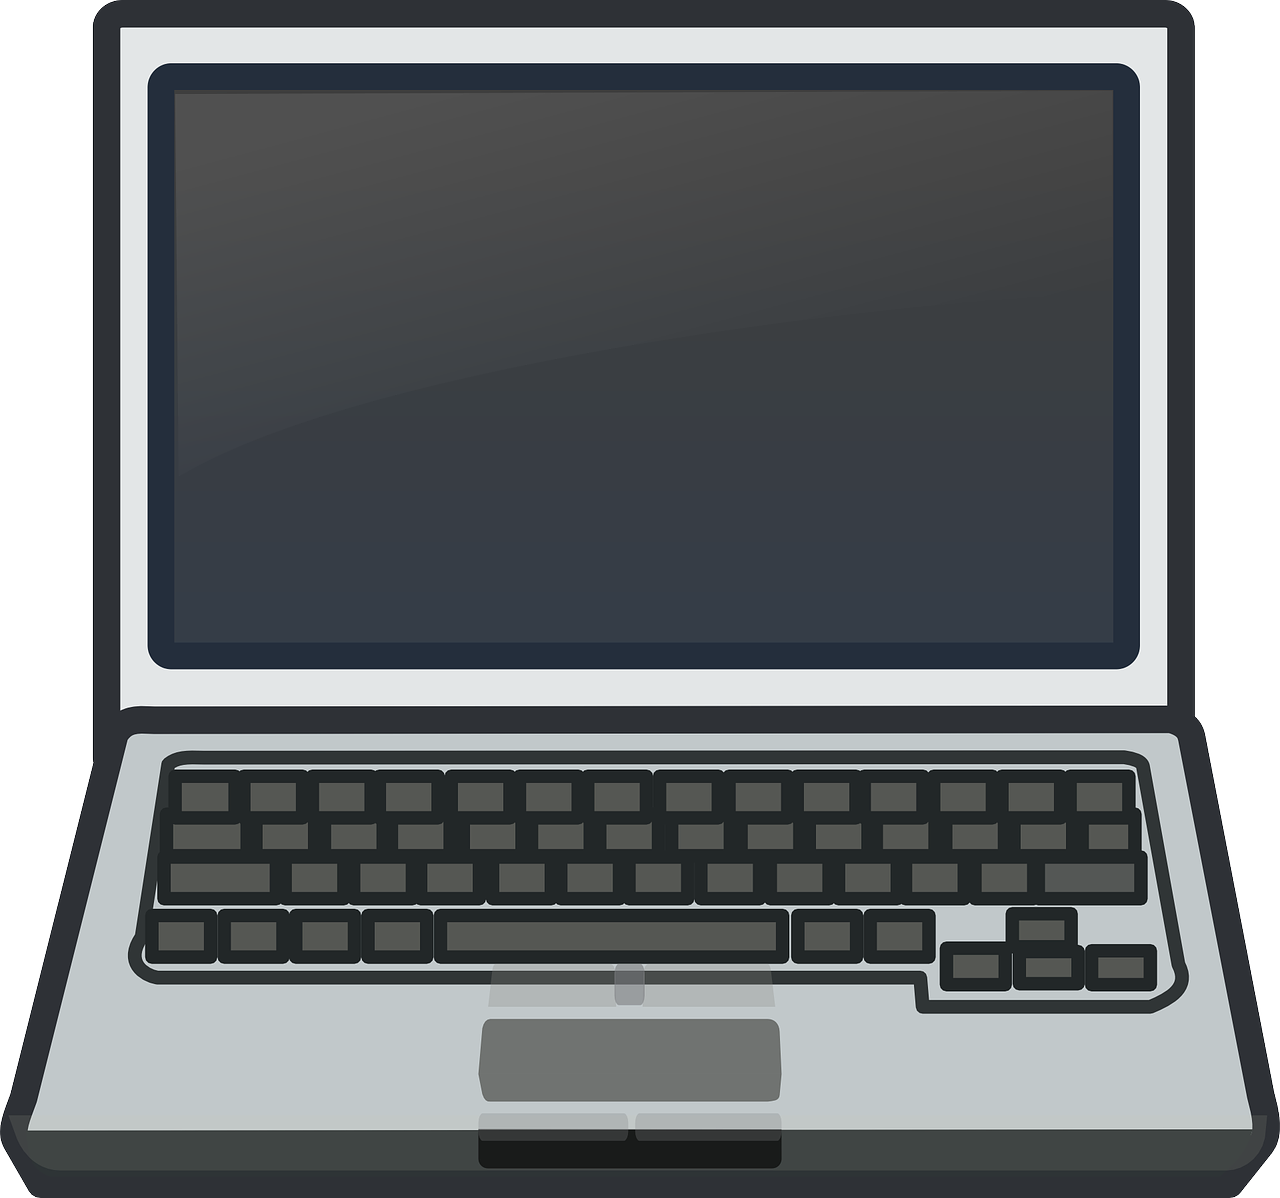 Laptop clipart #19, Download drawings